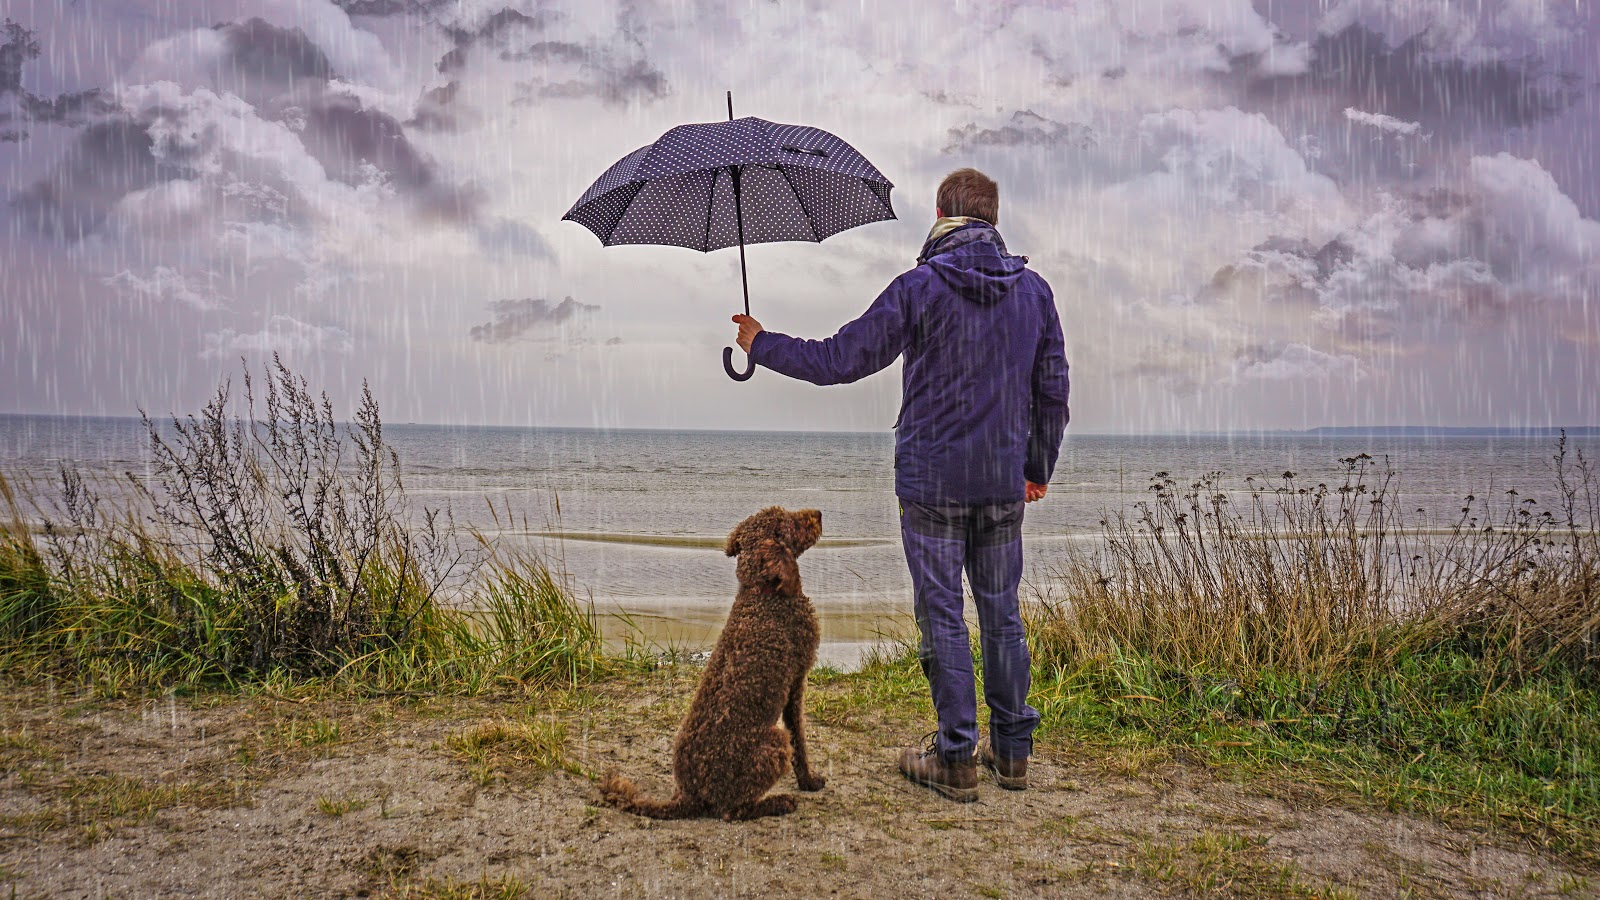 A man looking out onto the coast in the rain while holding an umbrella over his dog